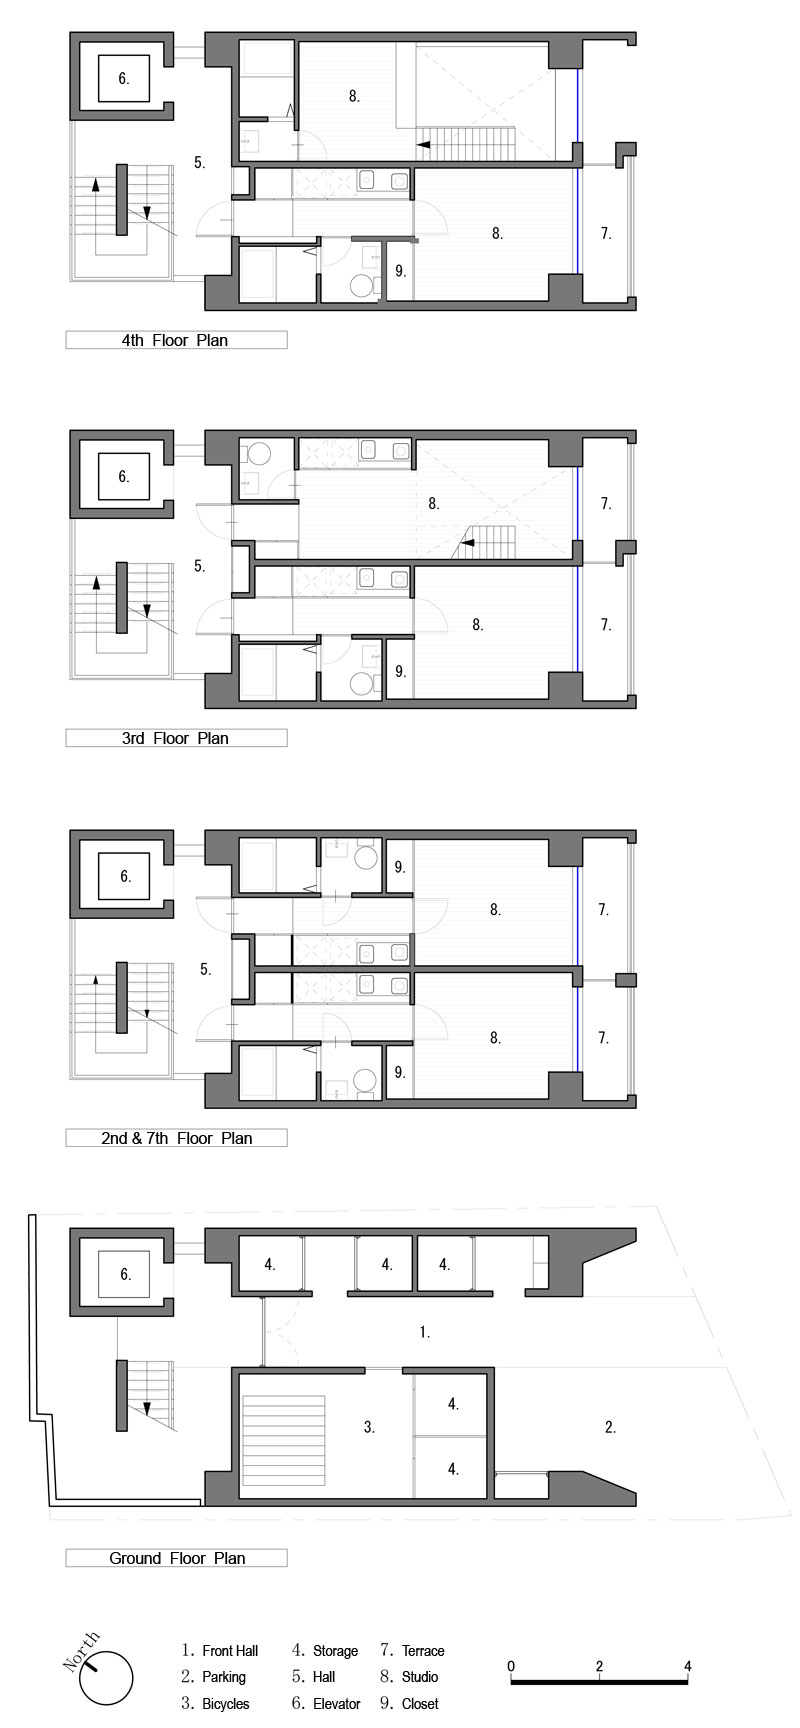 Apartment in Katayama Elevation Section and Floor Plans WHAT